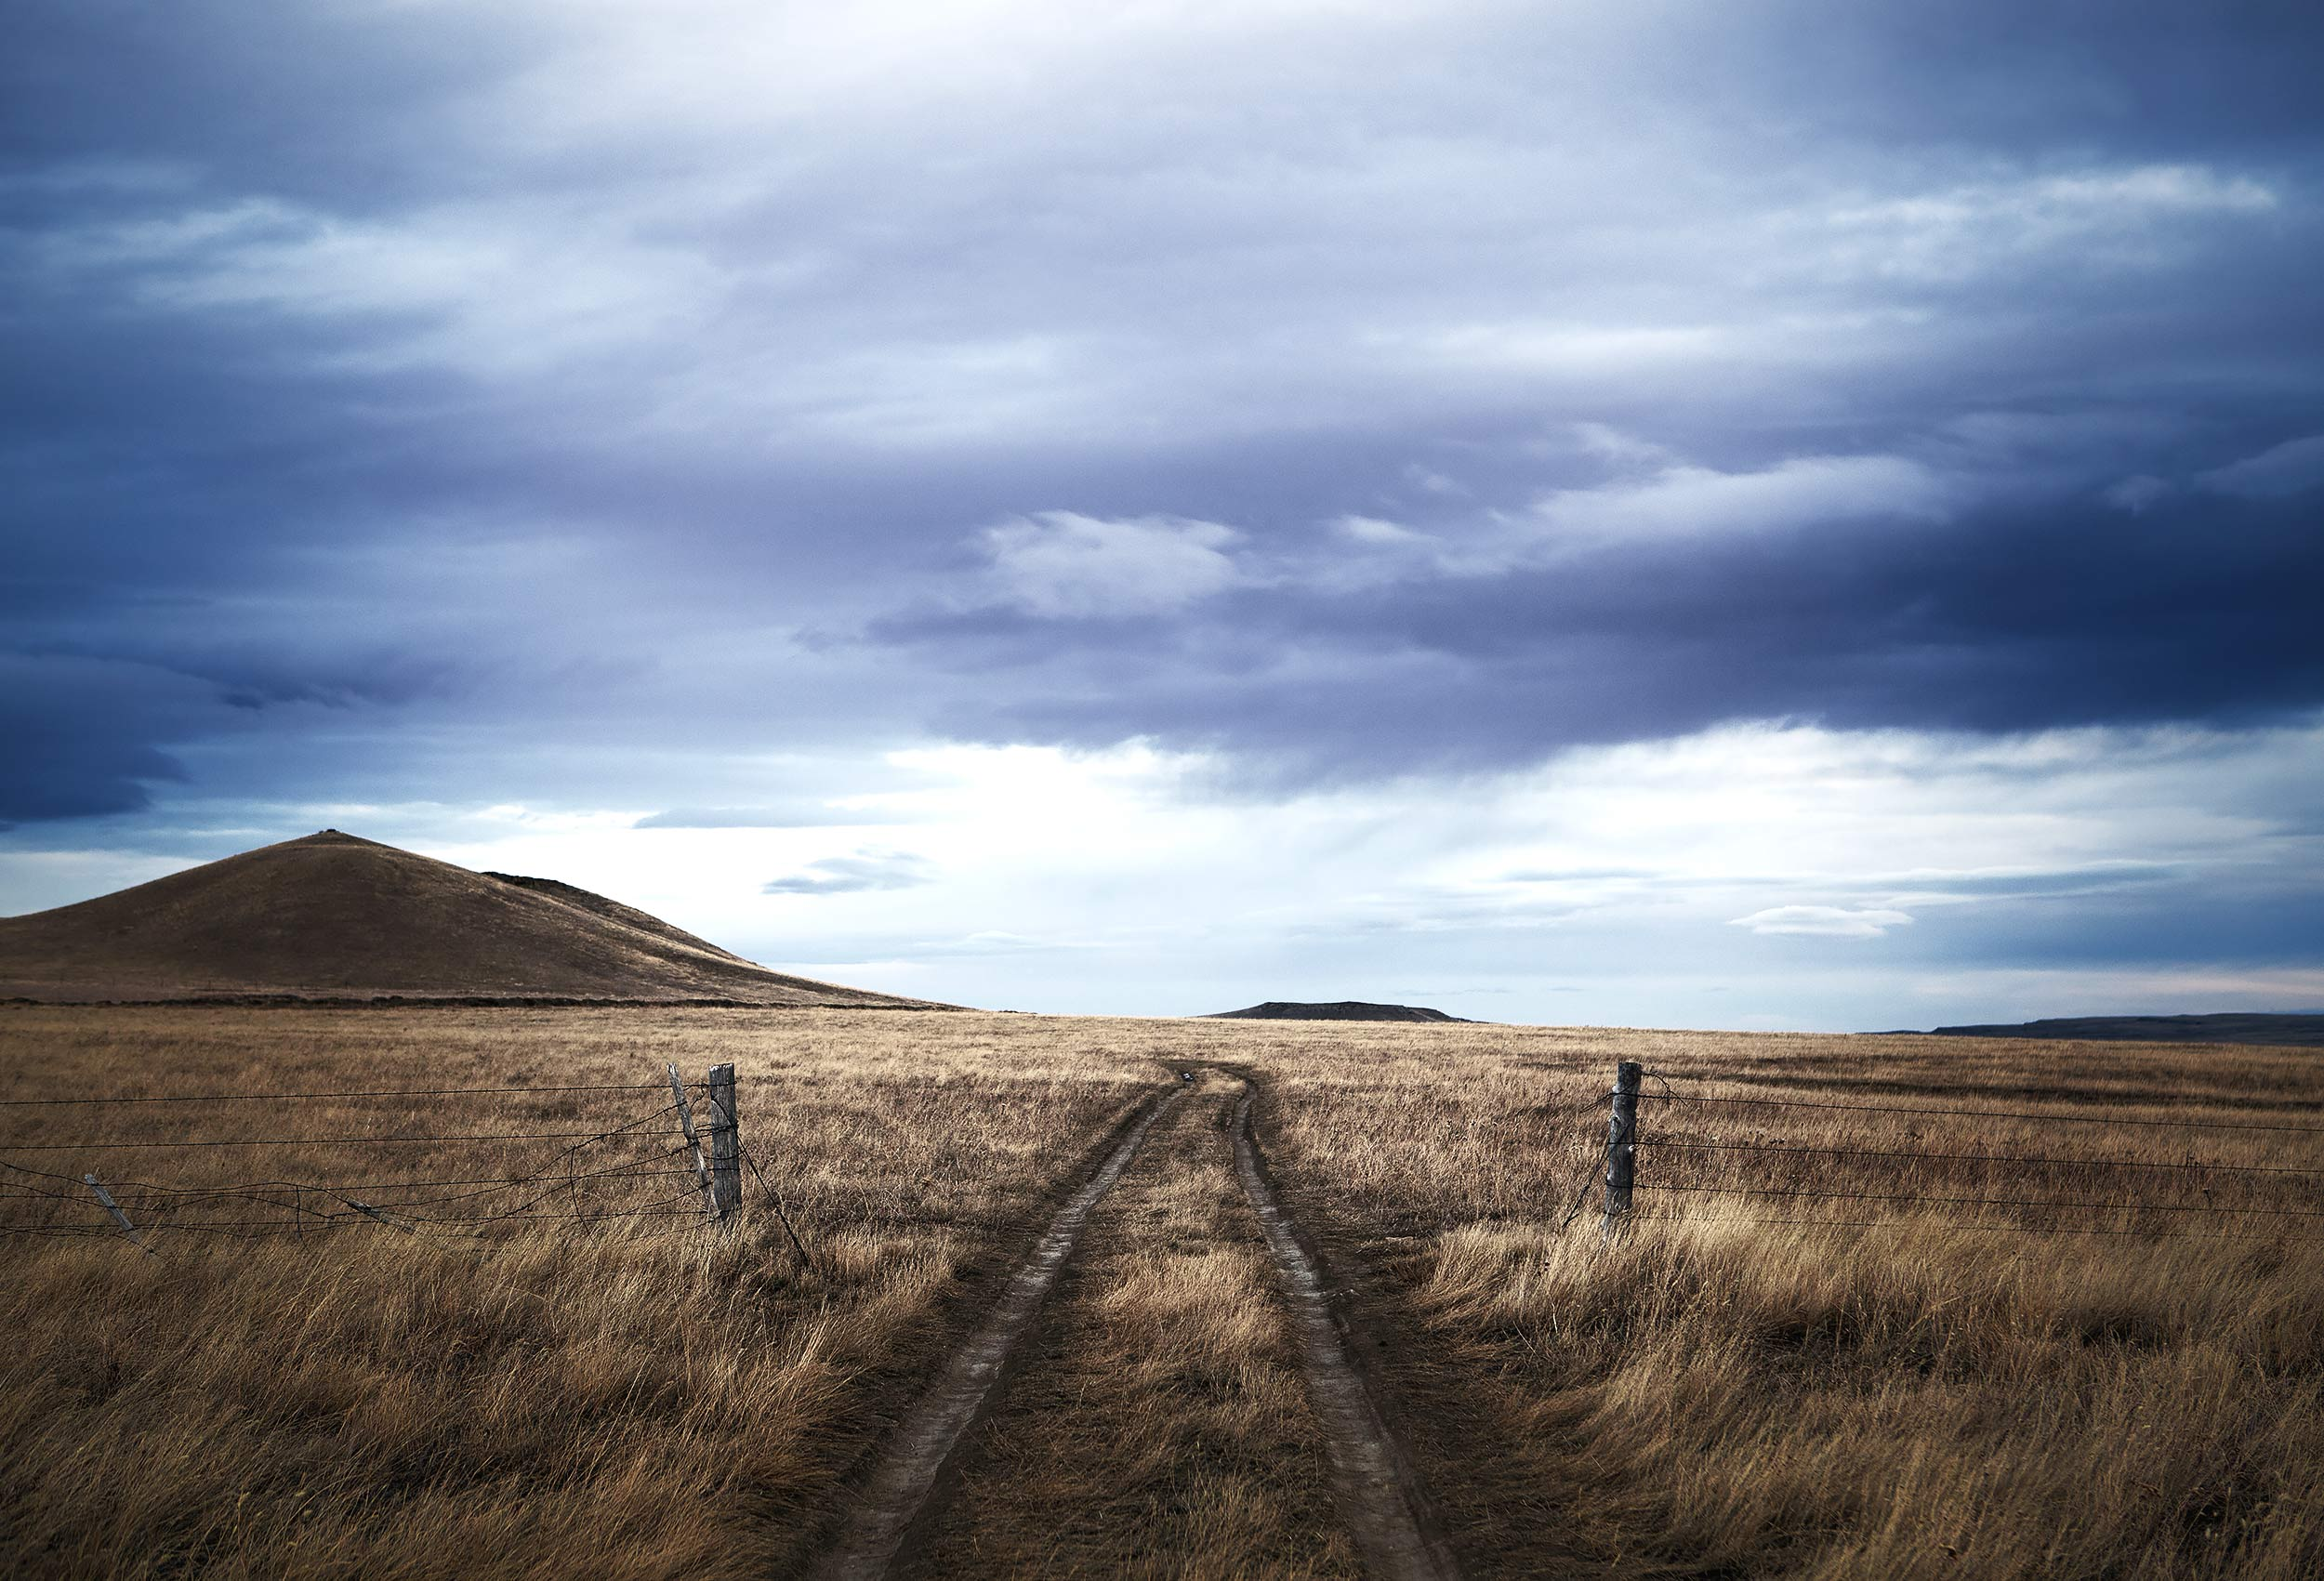 Dirt road ruts on a Montana ranch under a moody blue sky